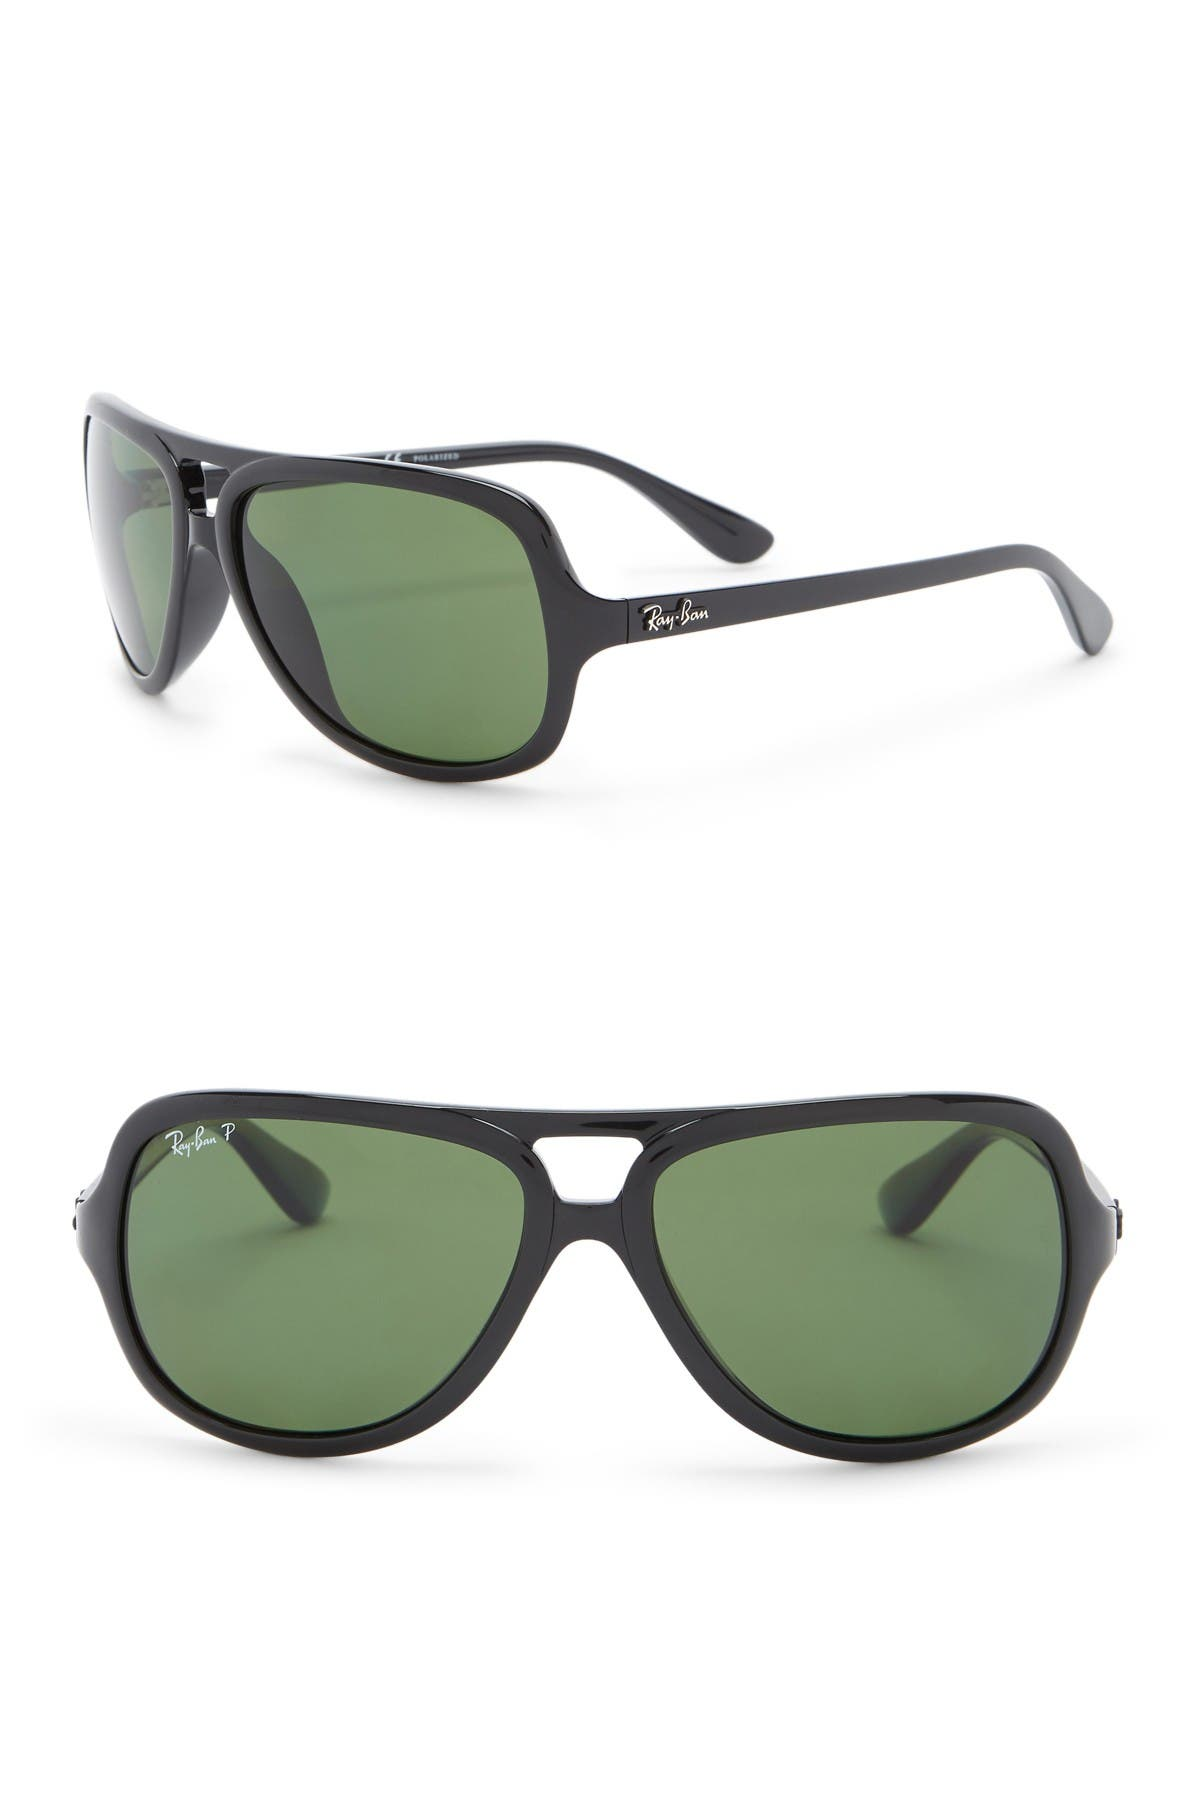 Image of Ray-Ban 59mm Pilot Polarized Aviator Sunglasses